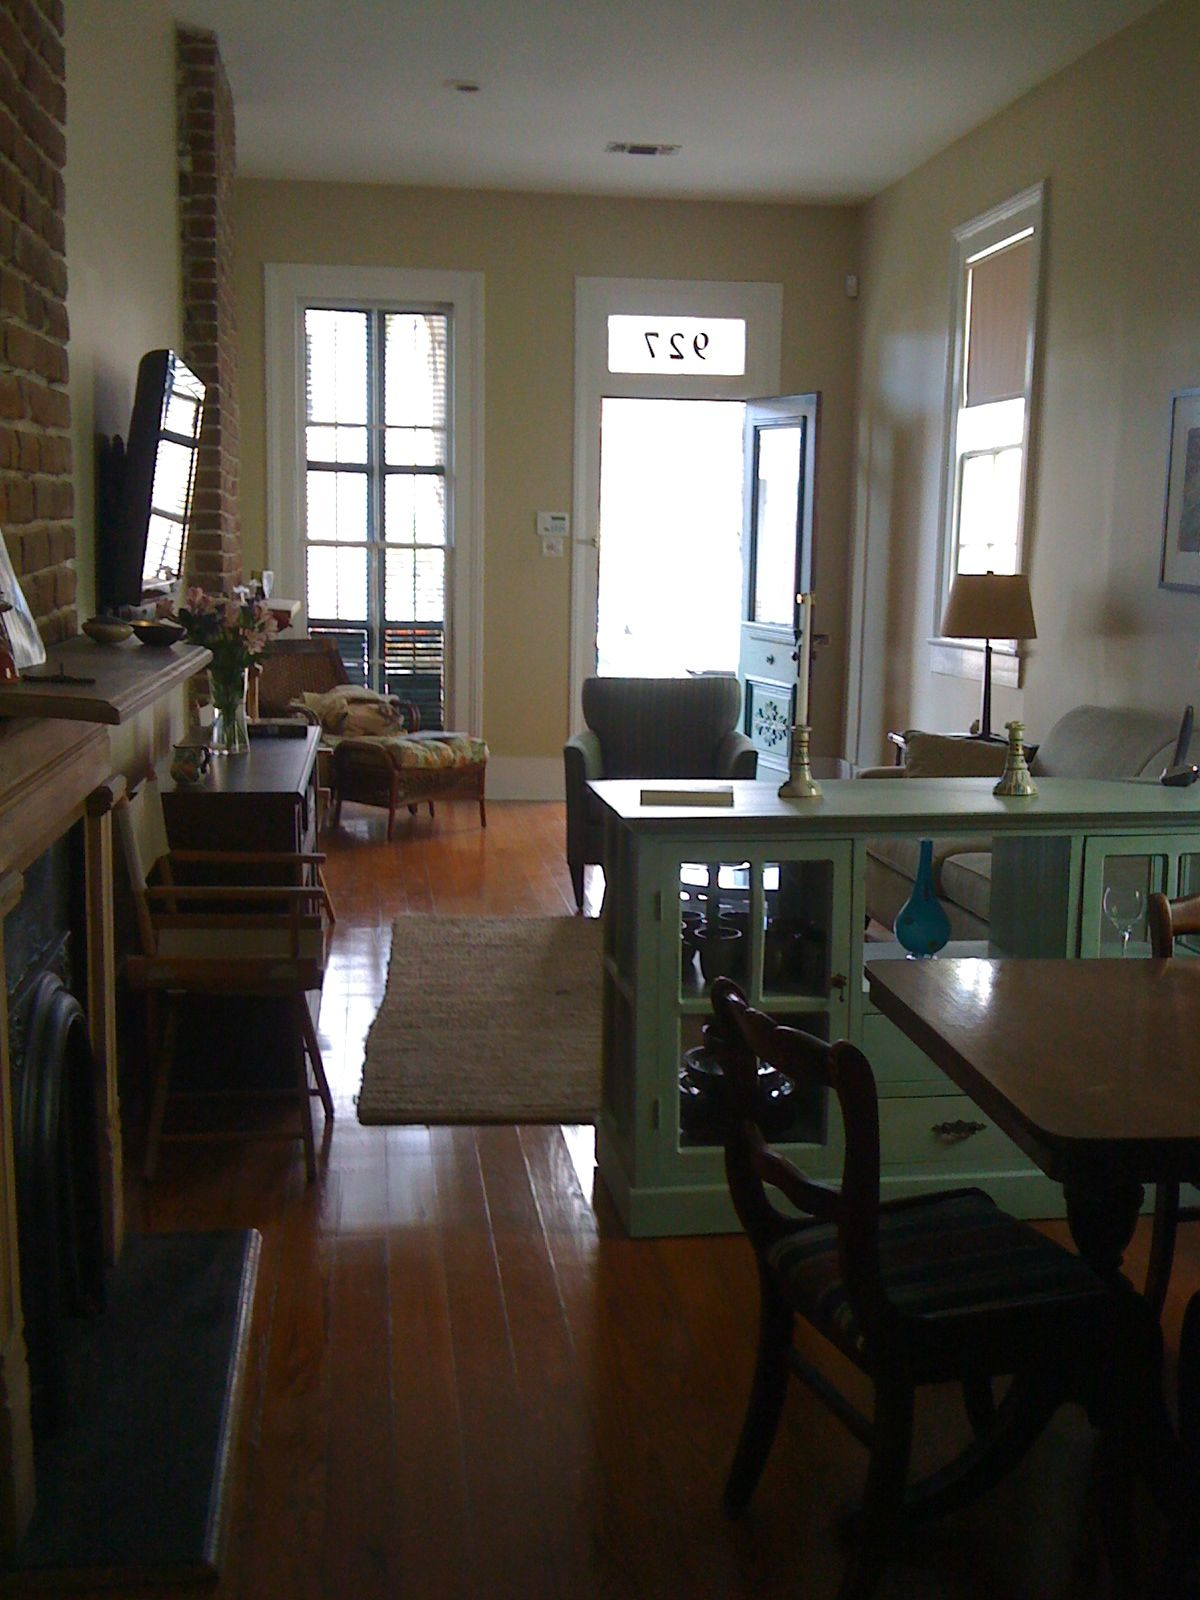 Pics Of Houses Inside Shotgun House Inside Lovely Small Homes And Cottages